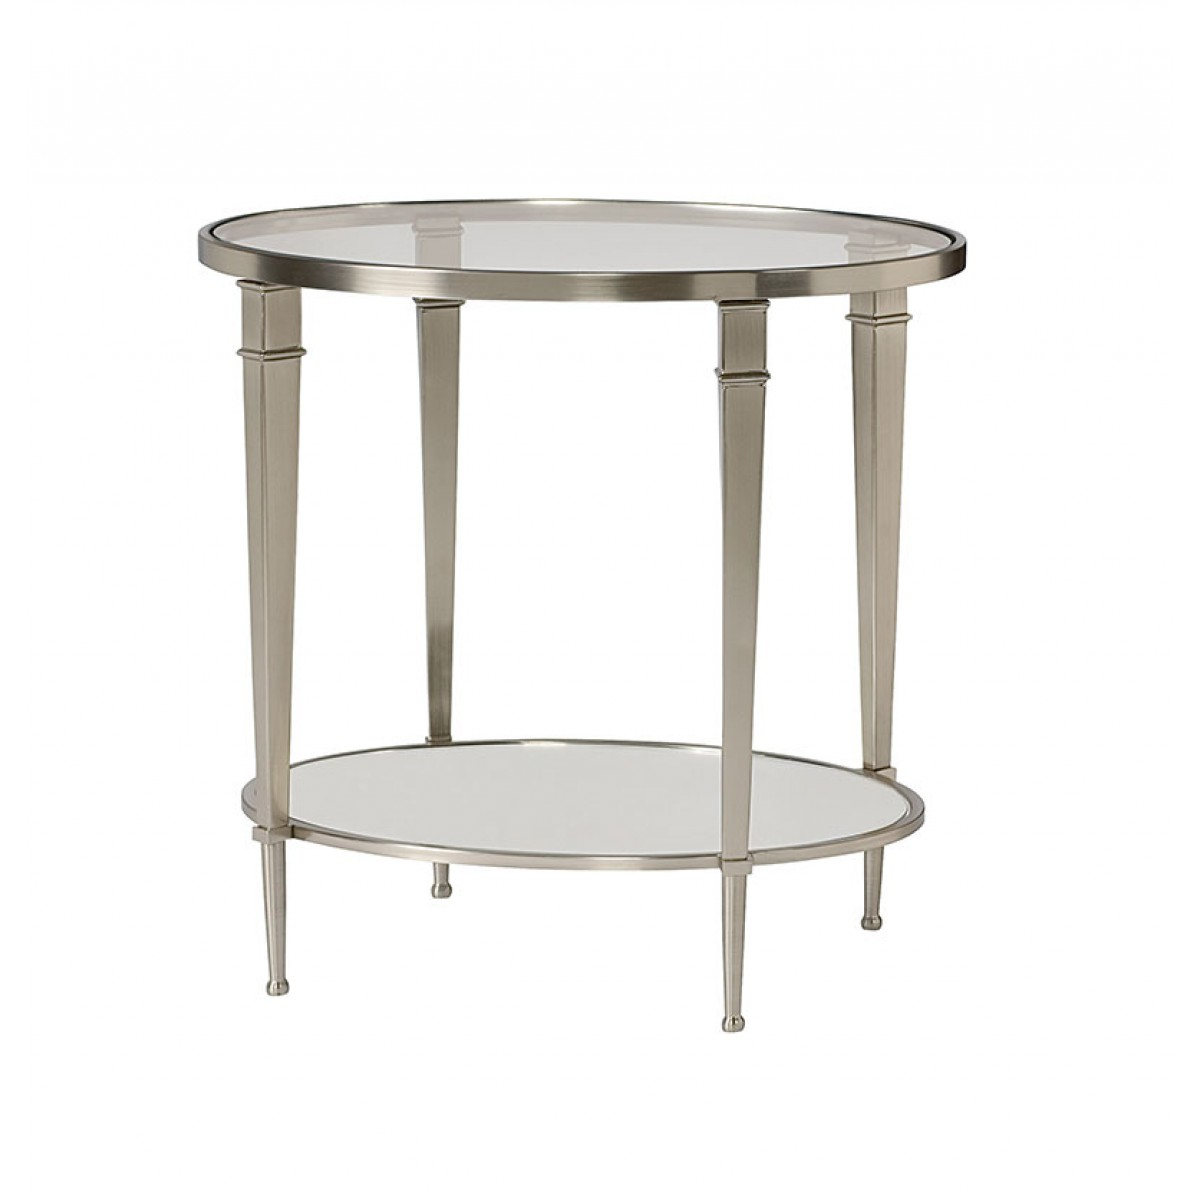 hammary mallory oval end table marble accent chawston argos west elm dining bench outdoor patio furniture toronto white with umbrella hole shallow cabinet target threshold mirror